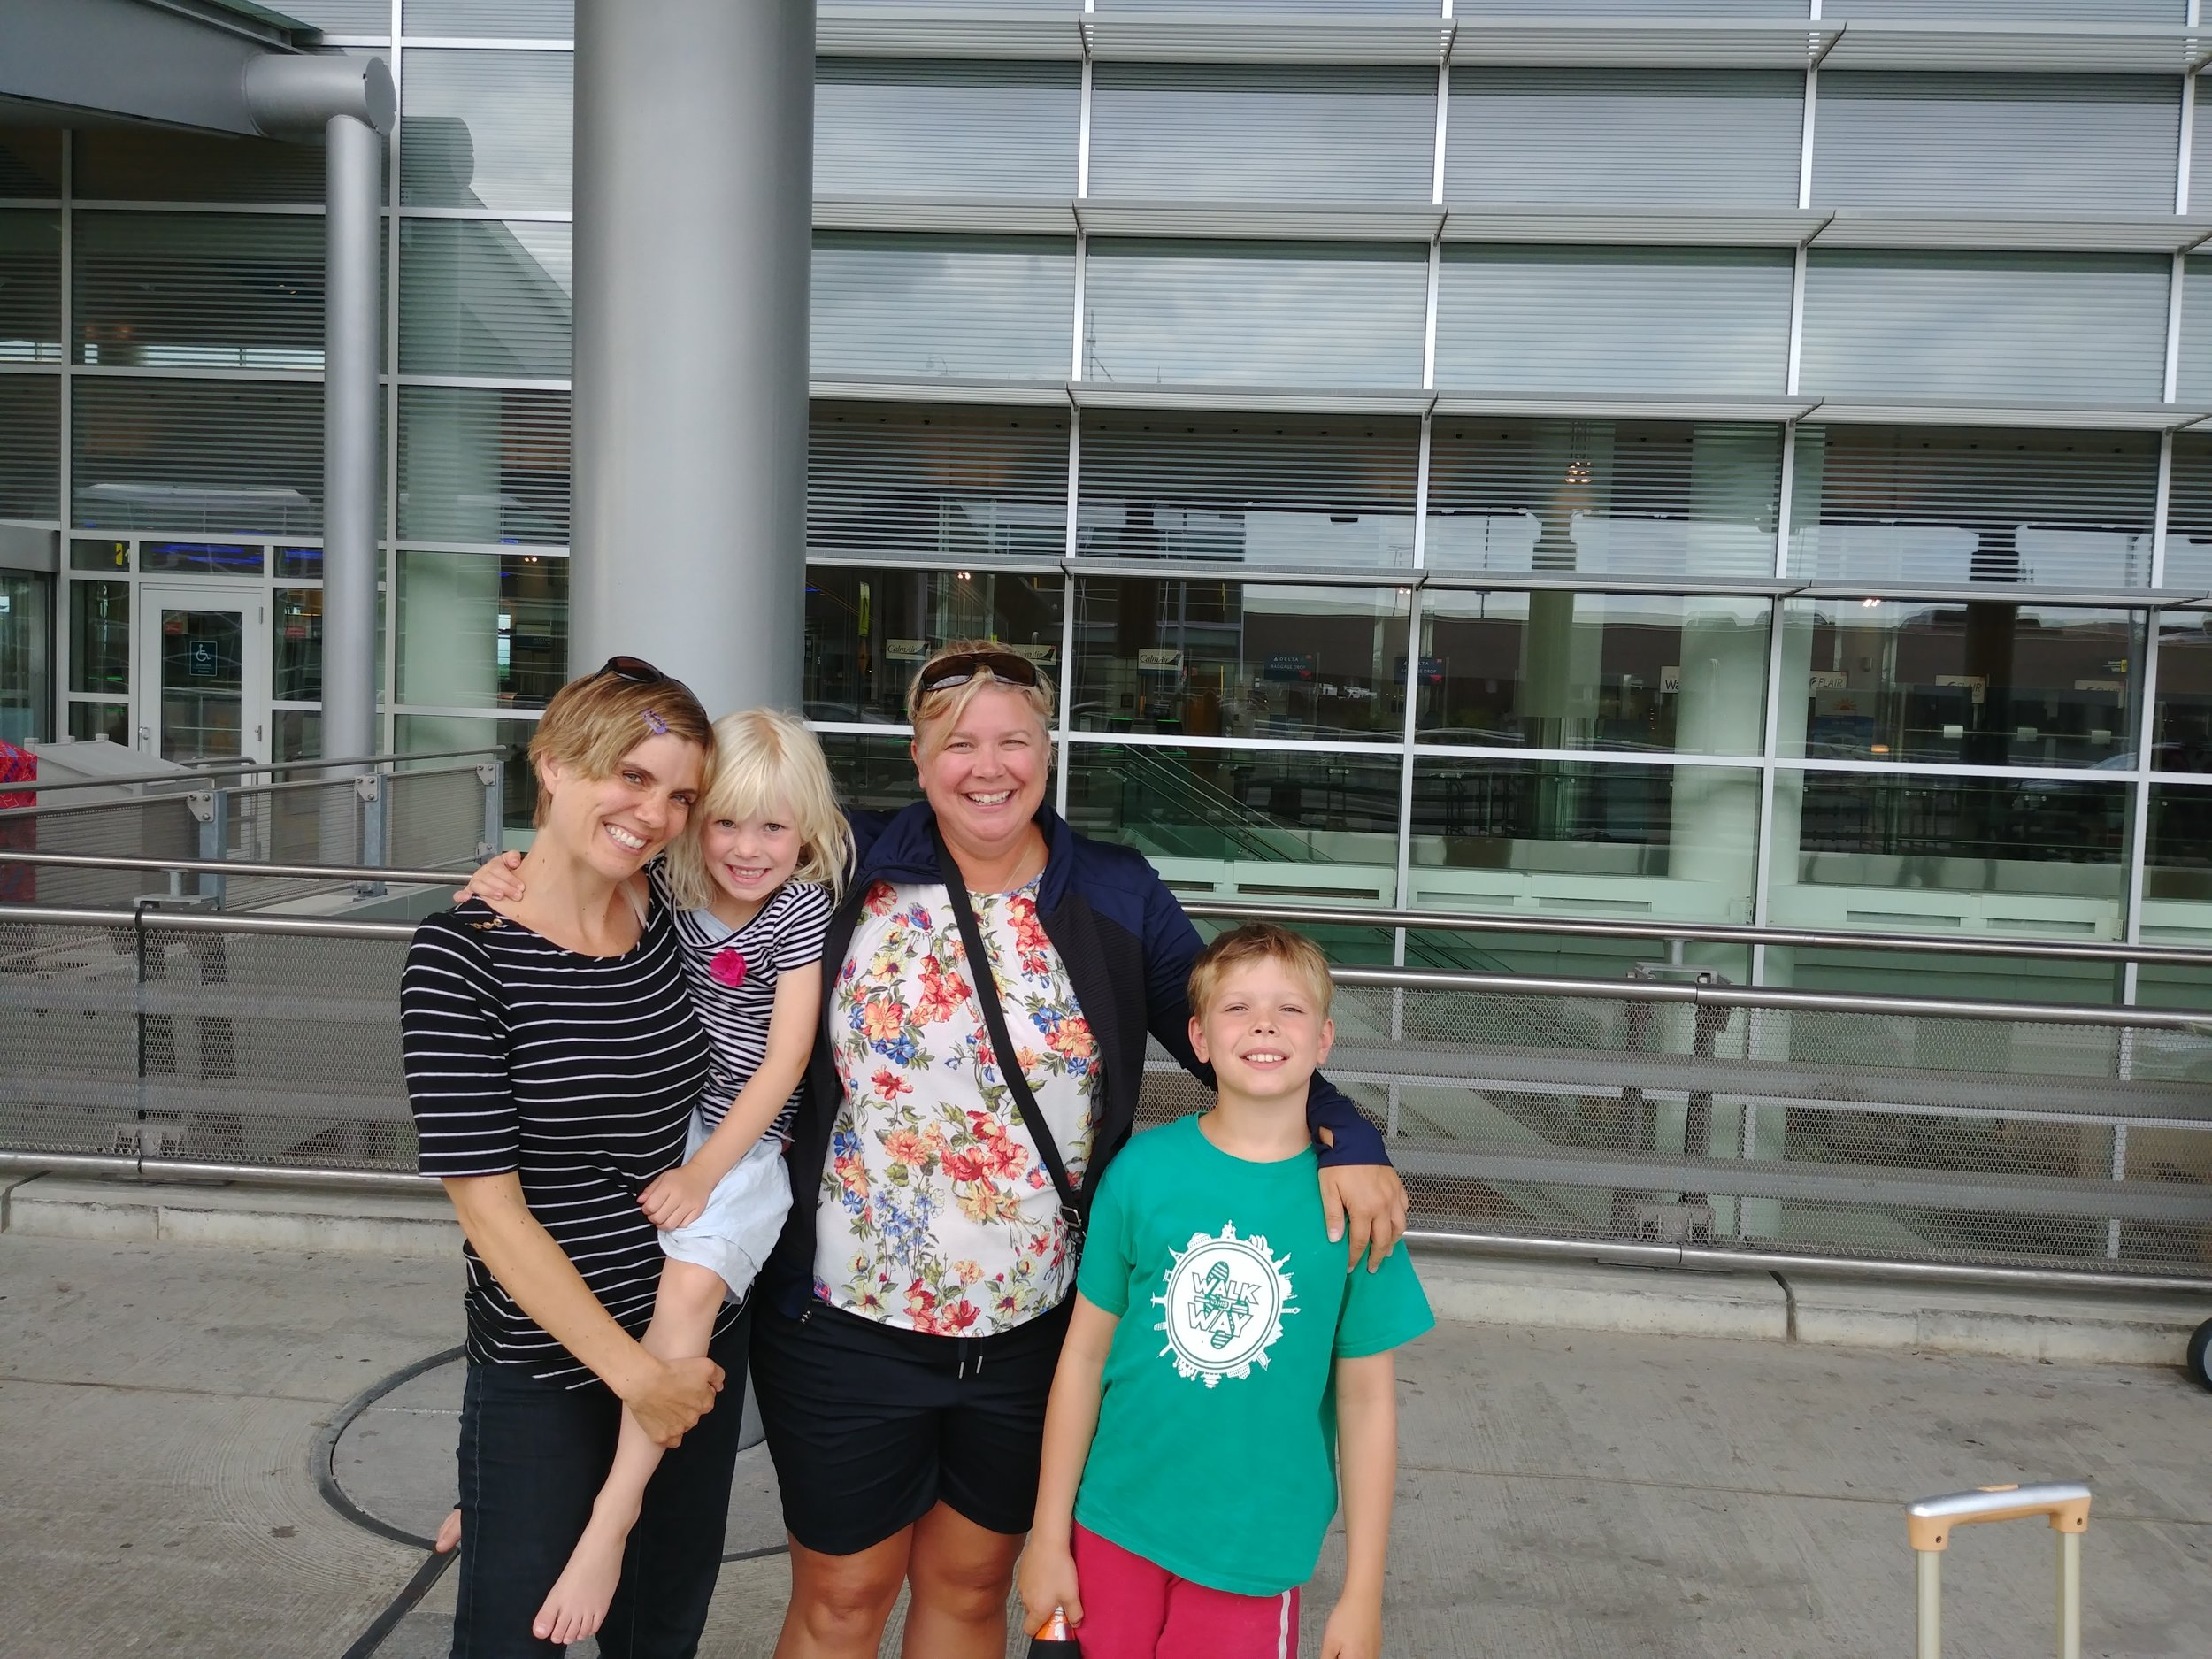 Saying good-bye to Aunt Tammy who came to be with us in Winnipeg! -